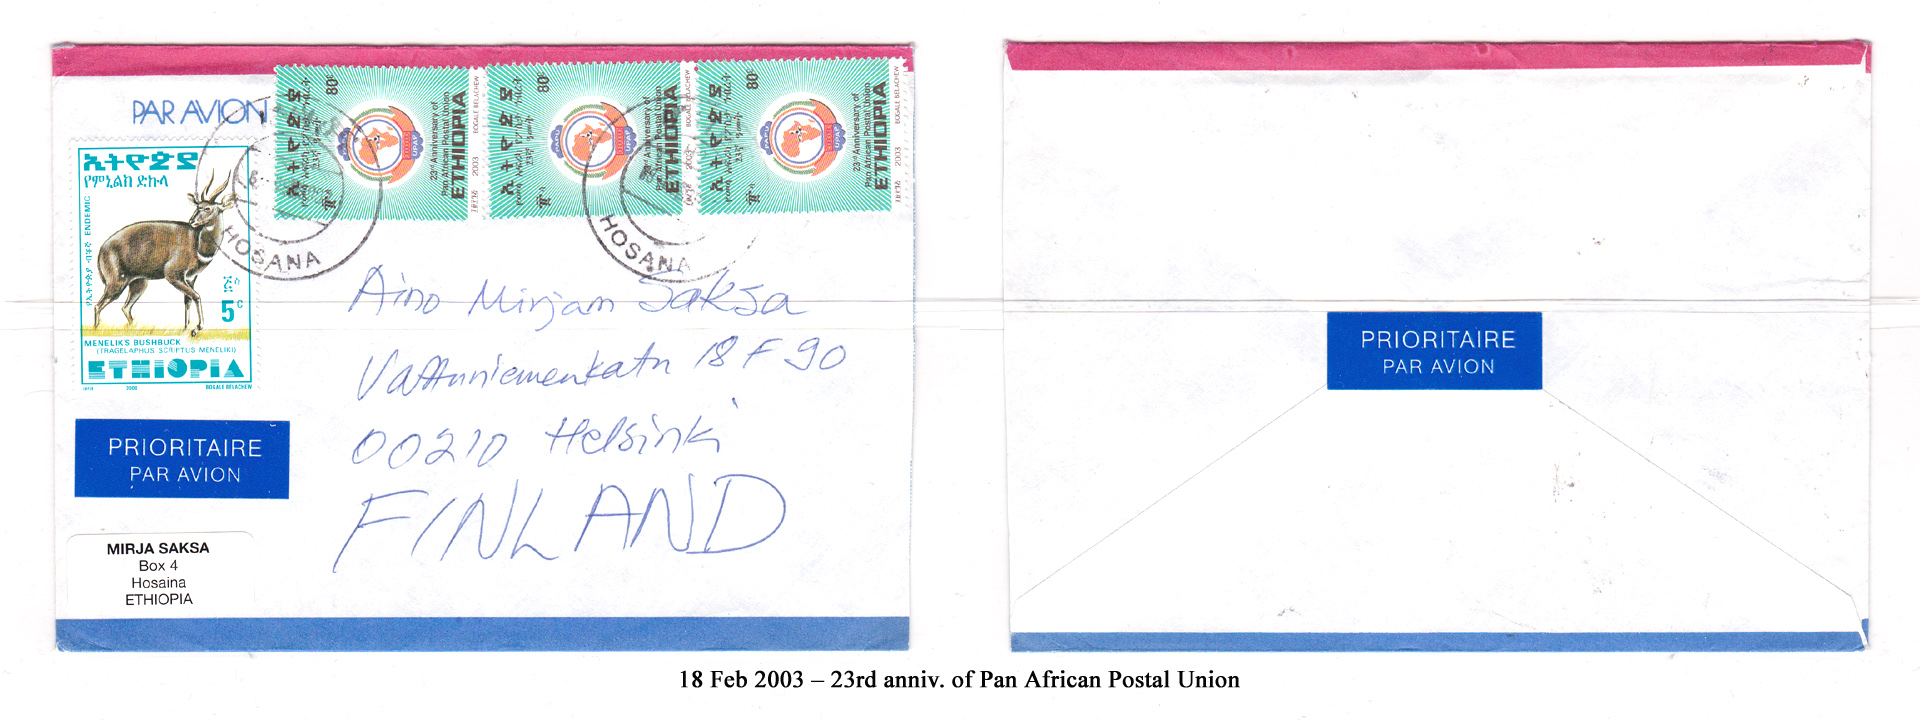 20030218 - 23rd anniv. of Pan African Postal Union